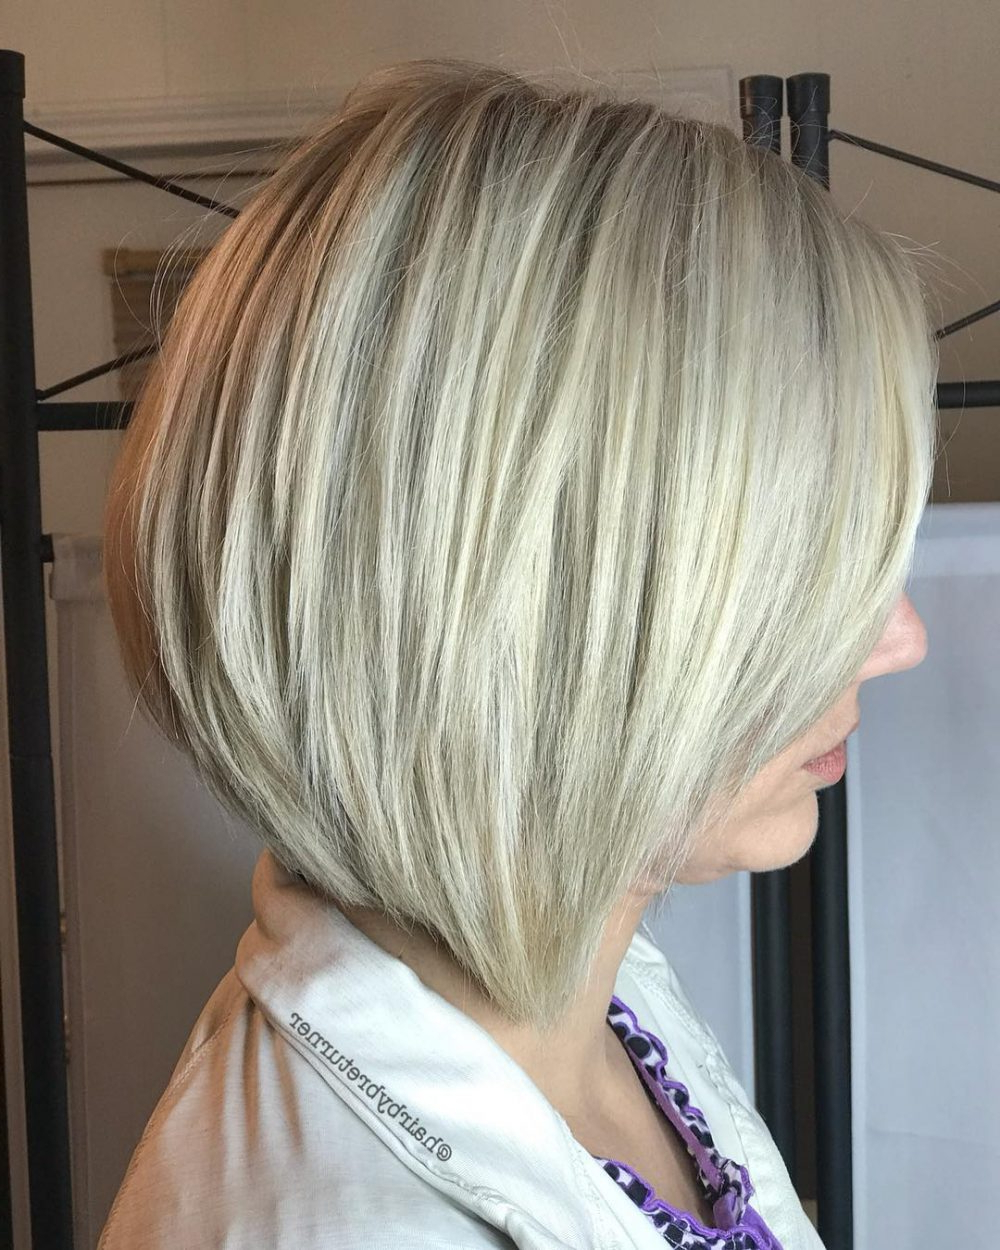 Best And Newest Medium Haircuts For Women In Their 50S Regarding 42 Sexiest Short Hairstyles For Women Over 40 In (View 4 of 20)